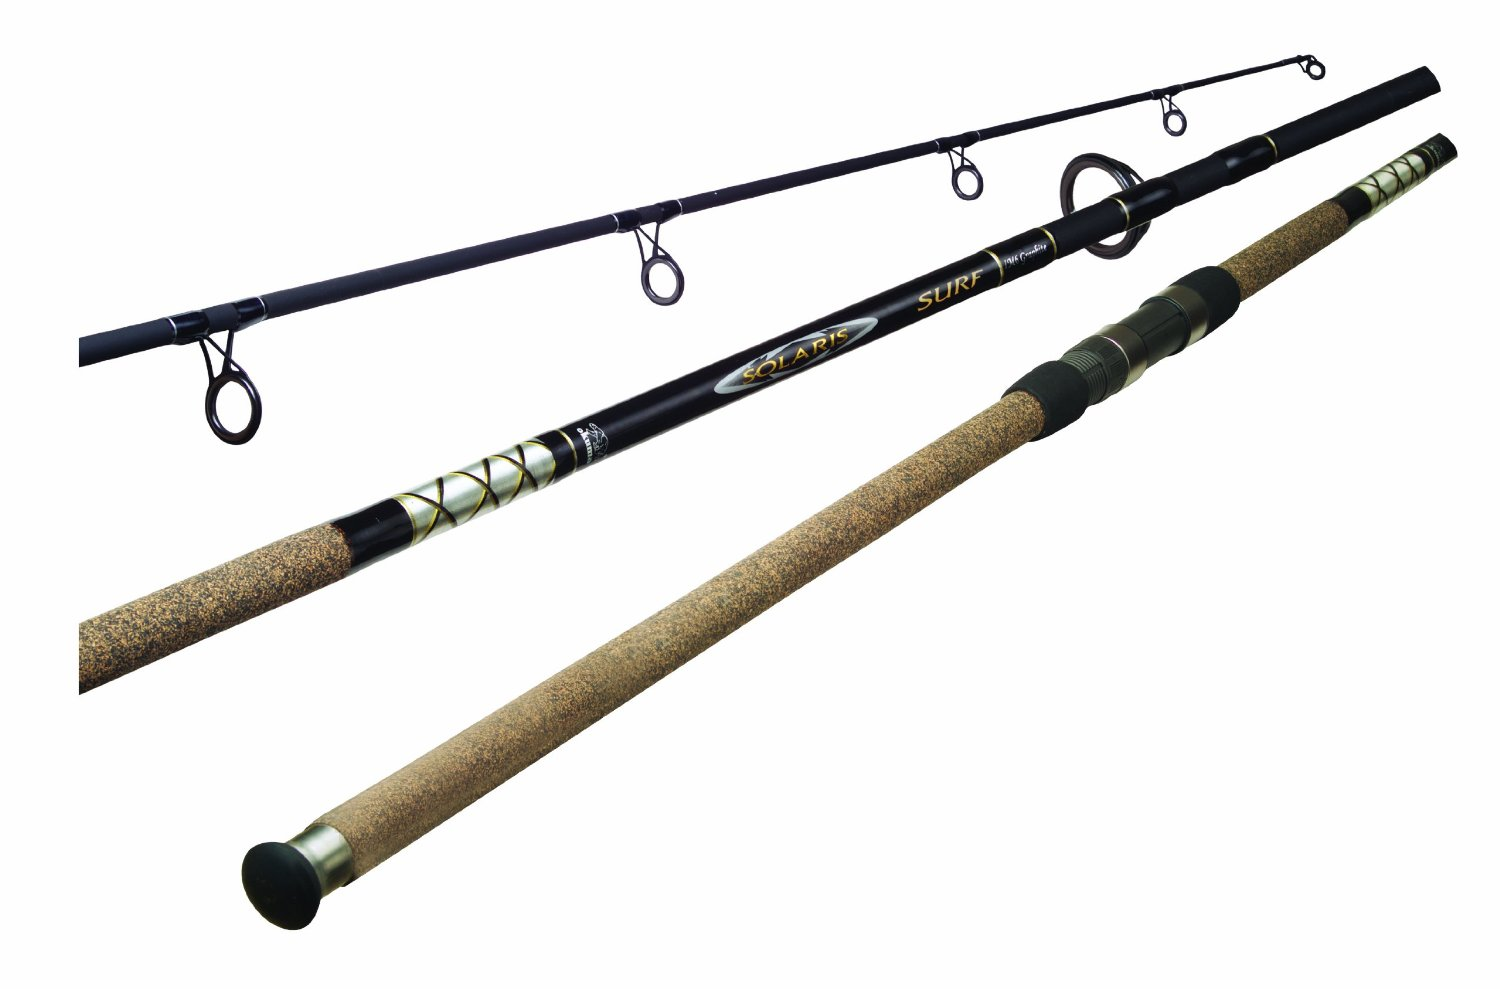 Okuma solaris surf fishing rods ss c 1102h 2 fishingnew for Best all around fishing rod